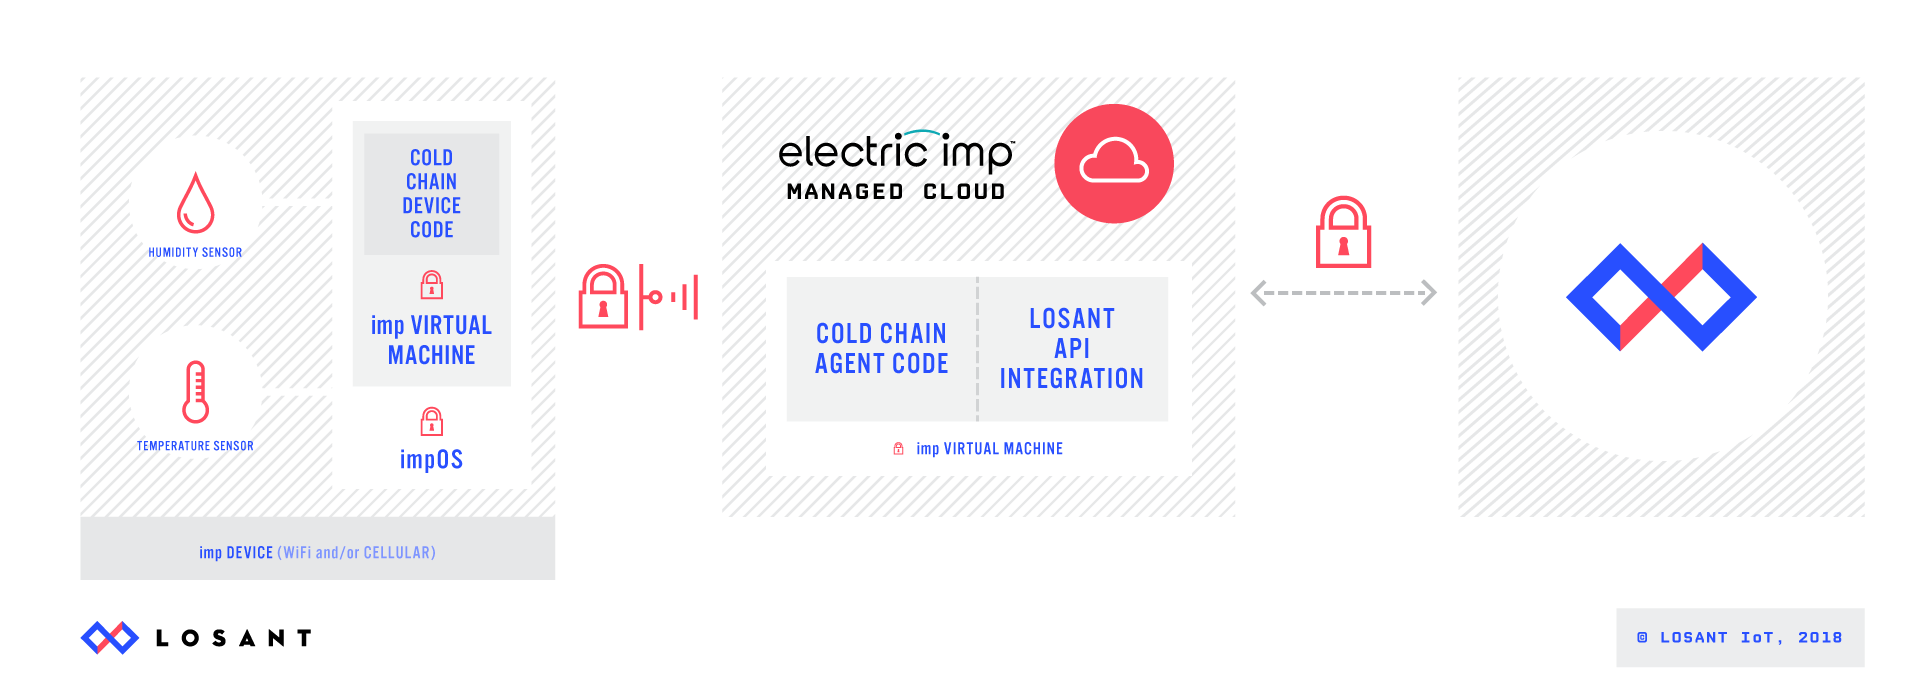 Losant Electric Imp Architecture Diagram